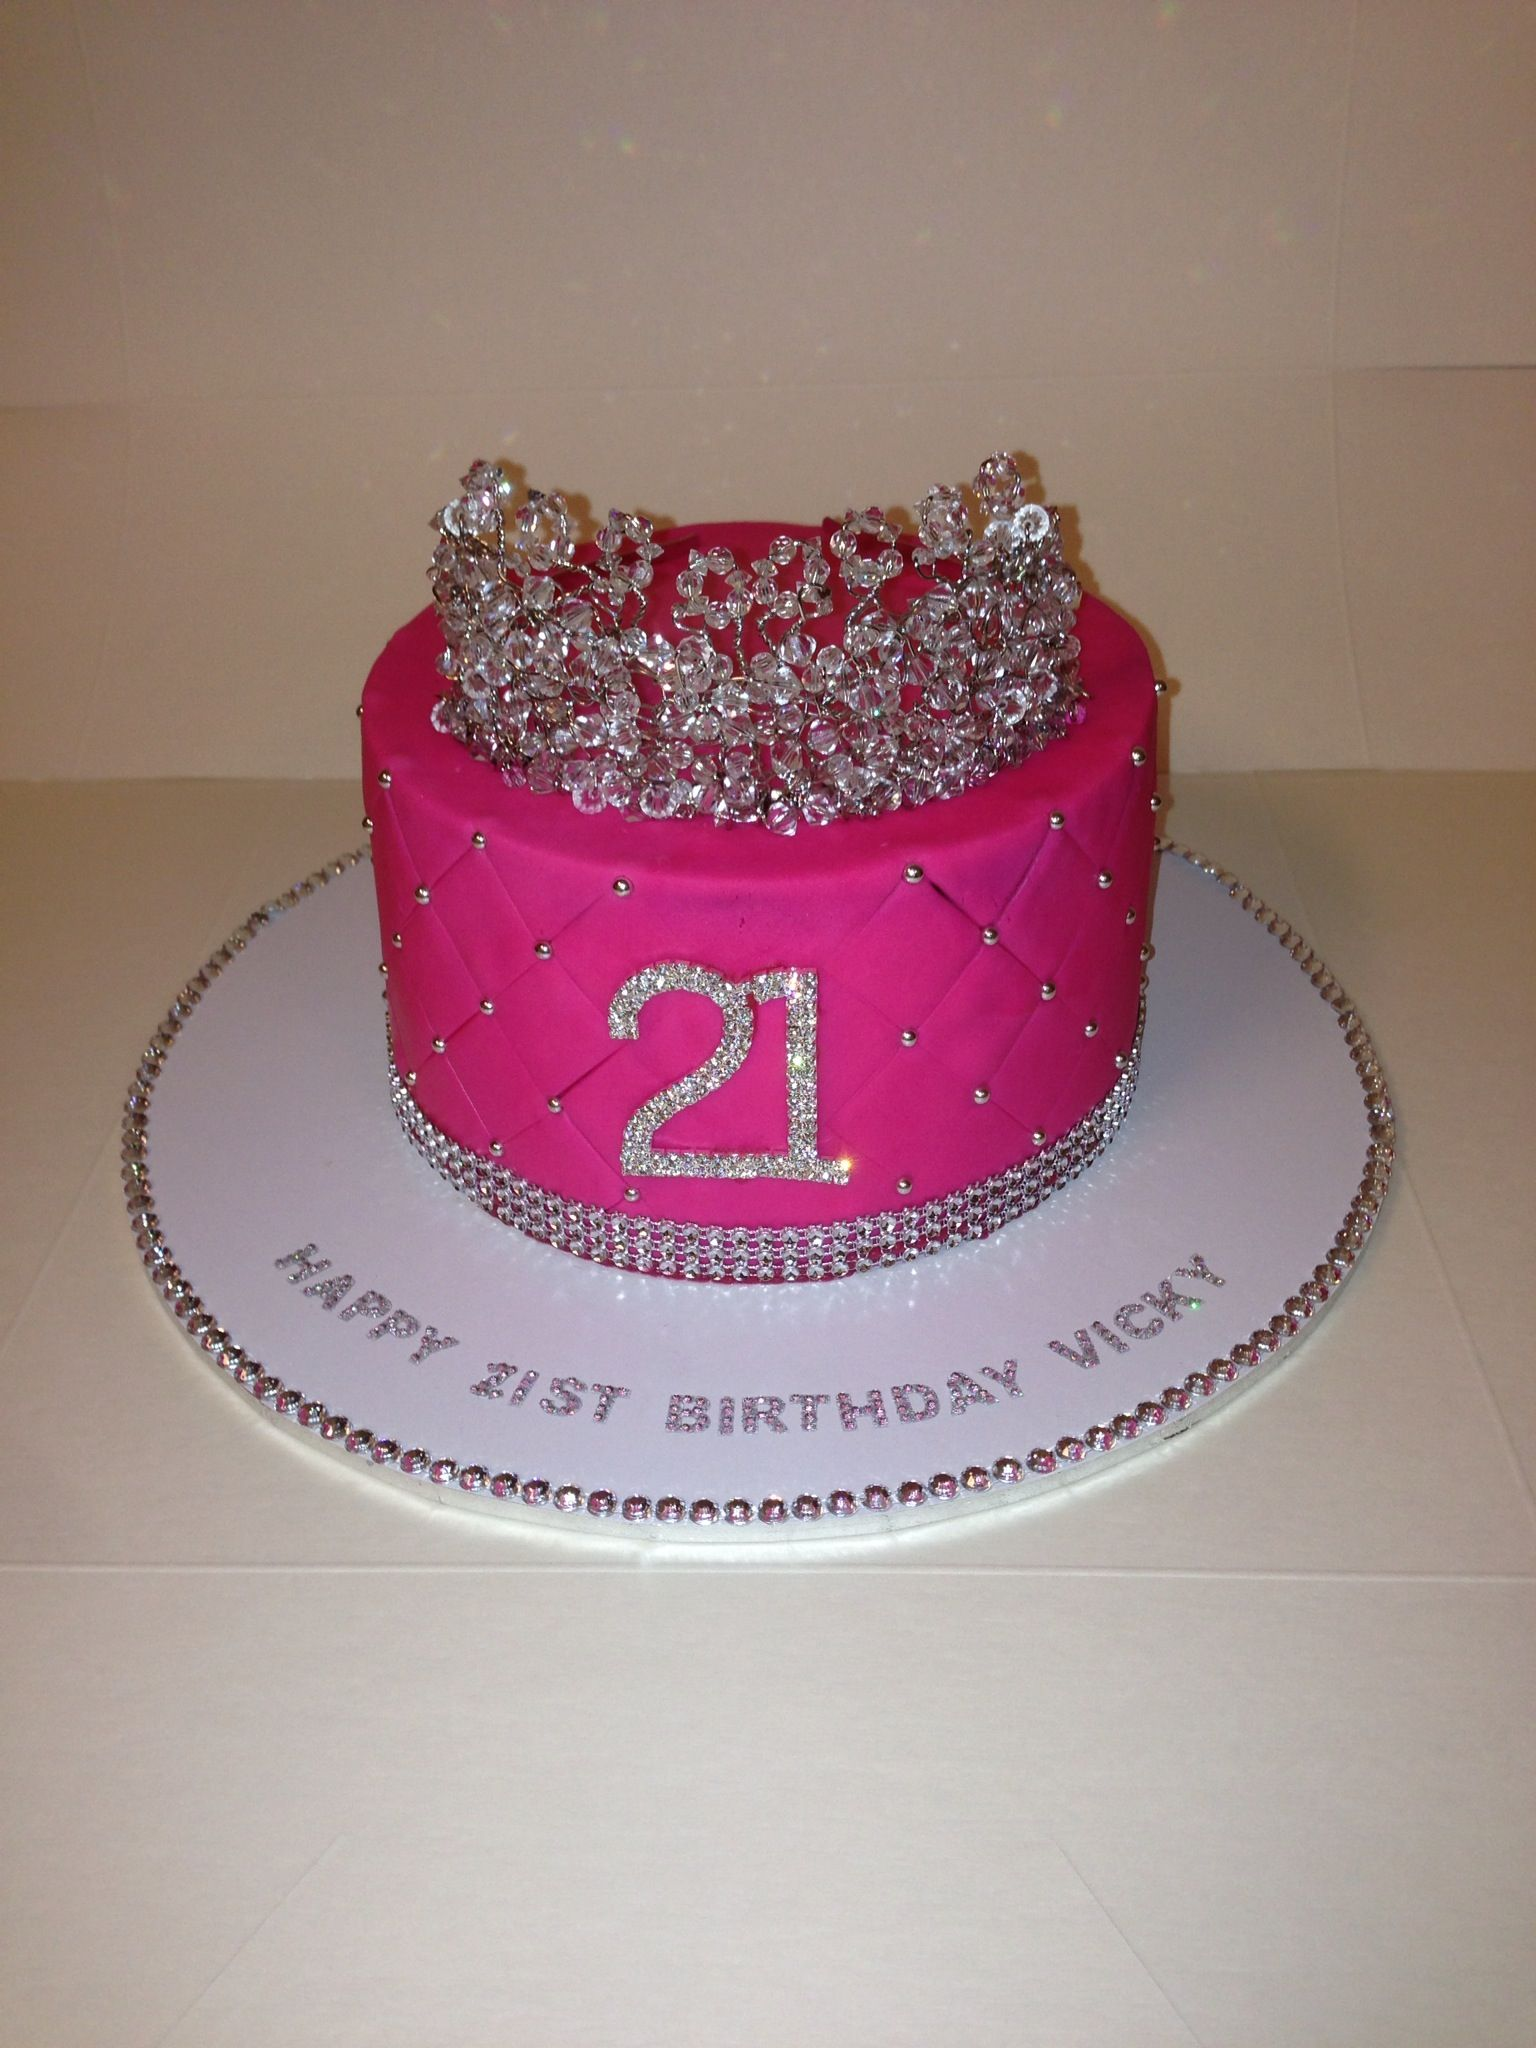 Tiara 21st Birthday Cake With Images 21st Birthday Cakes 21st